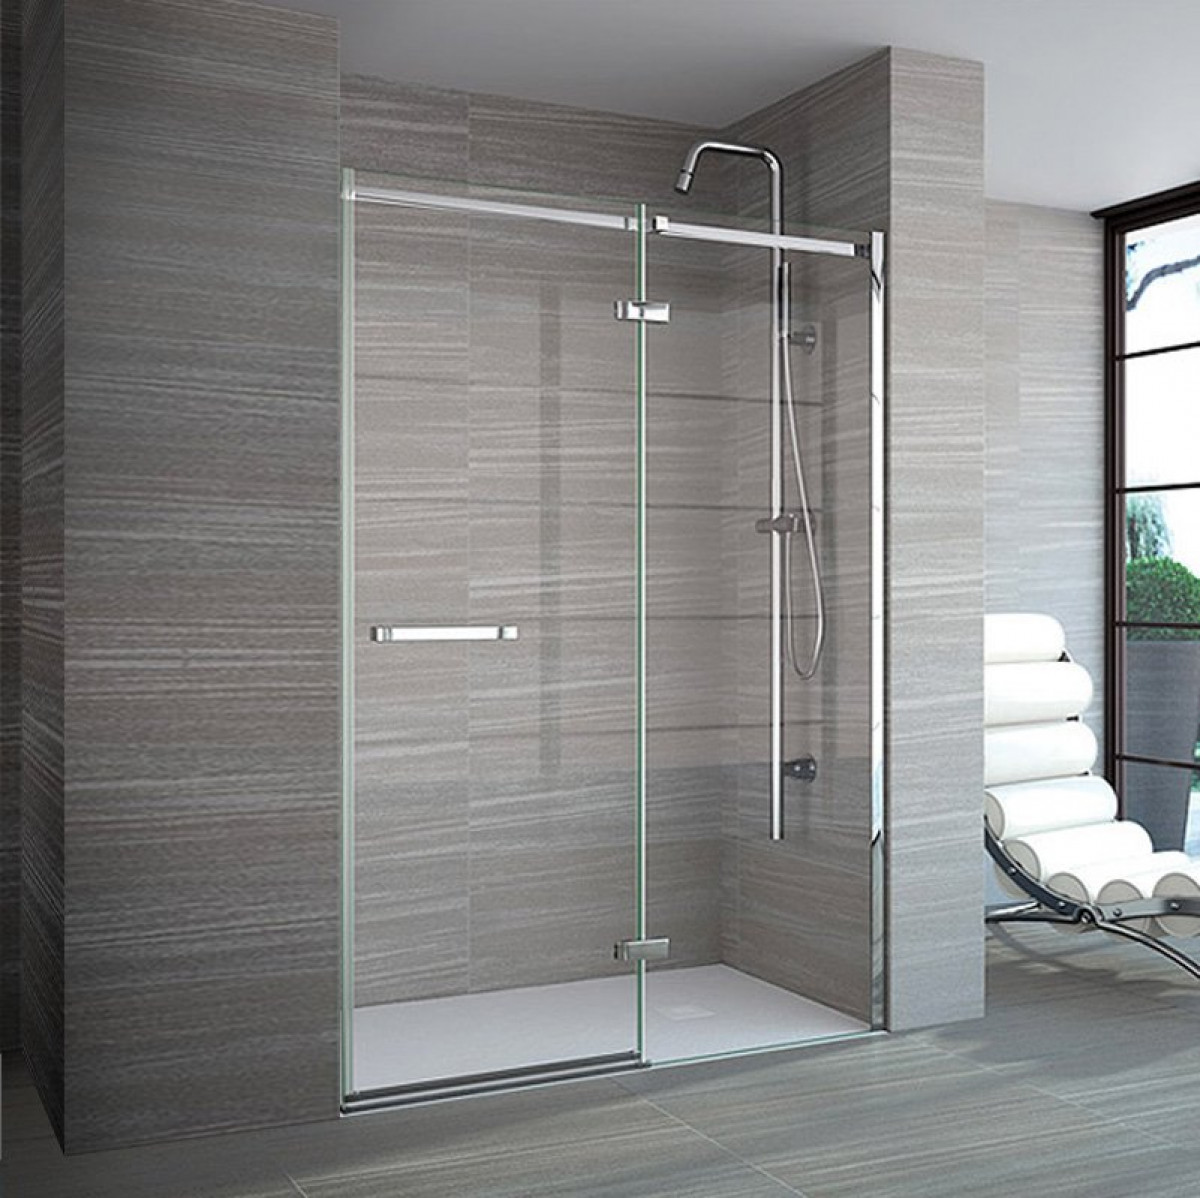 Merlyn 8 series frameless 1200 mm hinge inline shower door for 1200 hinged shower door